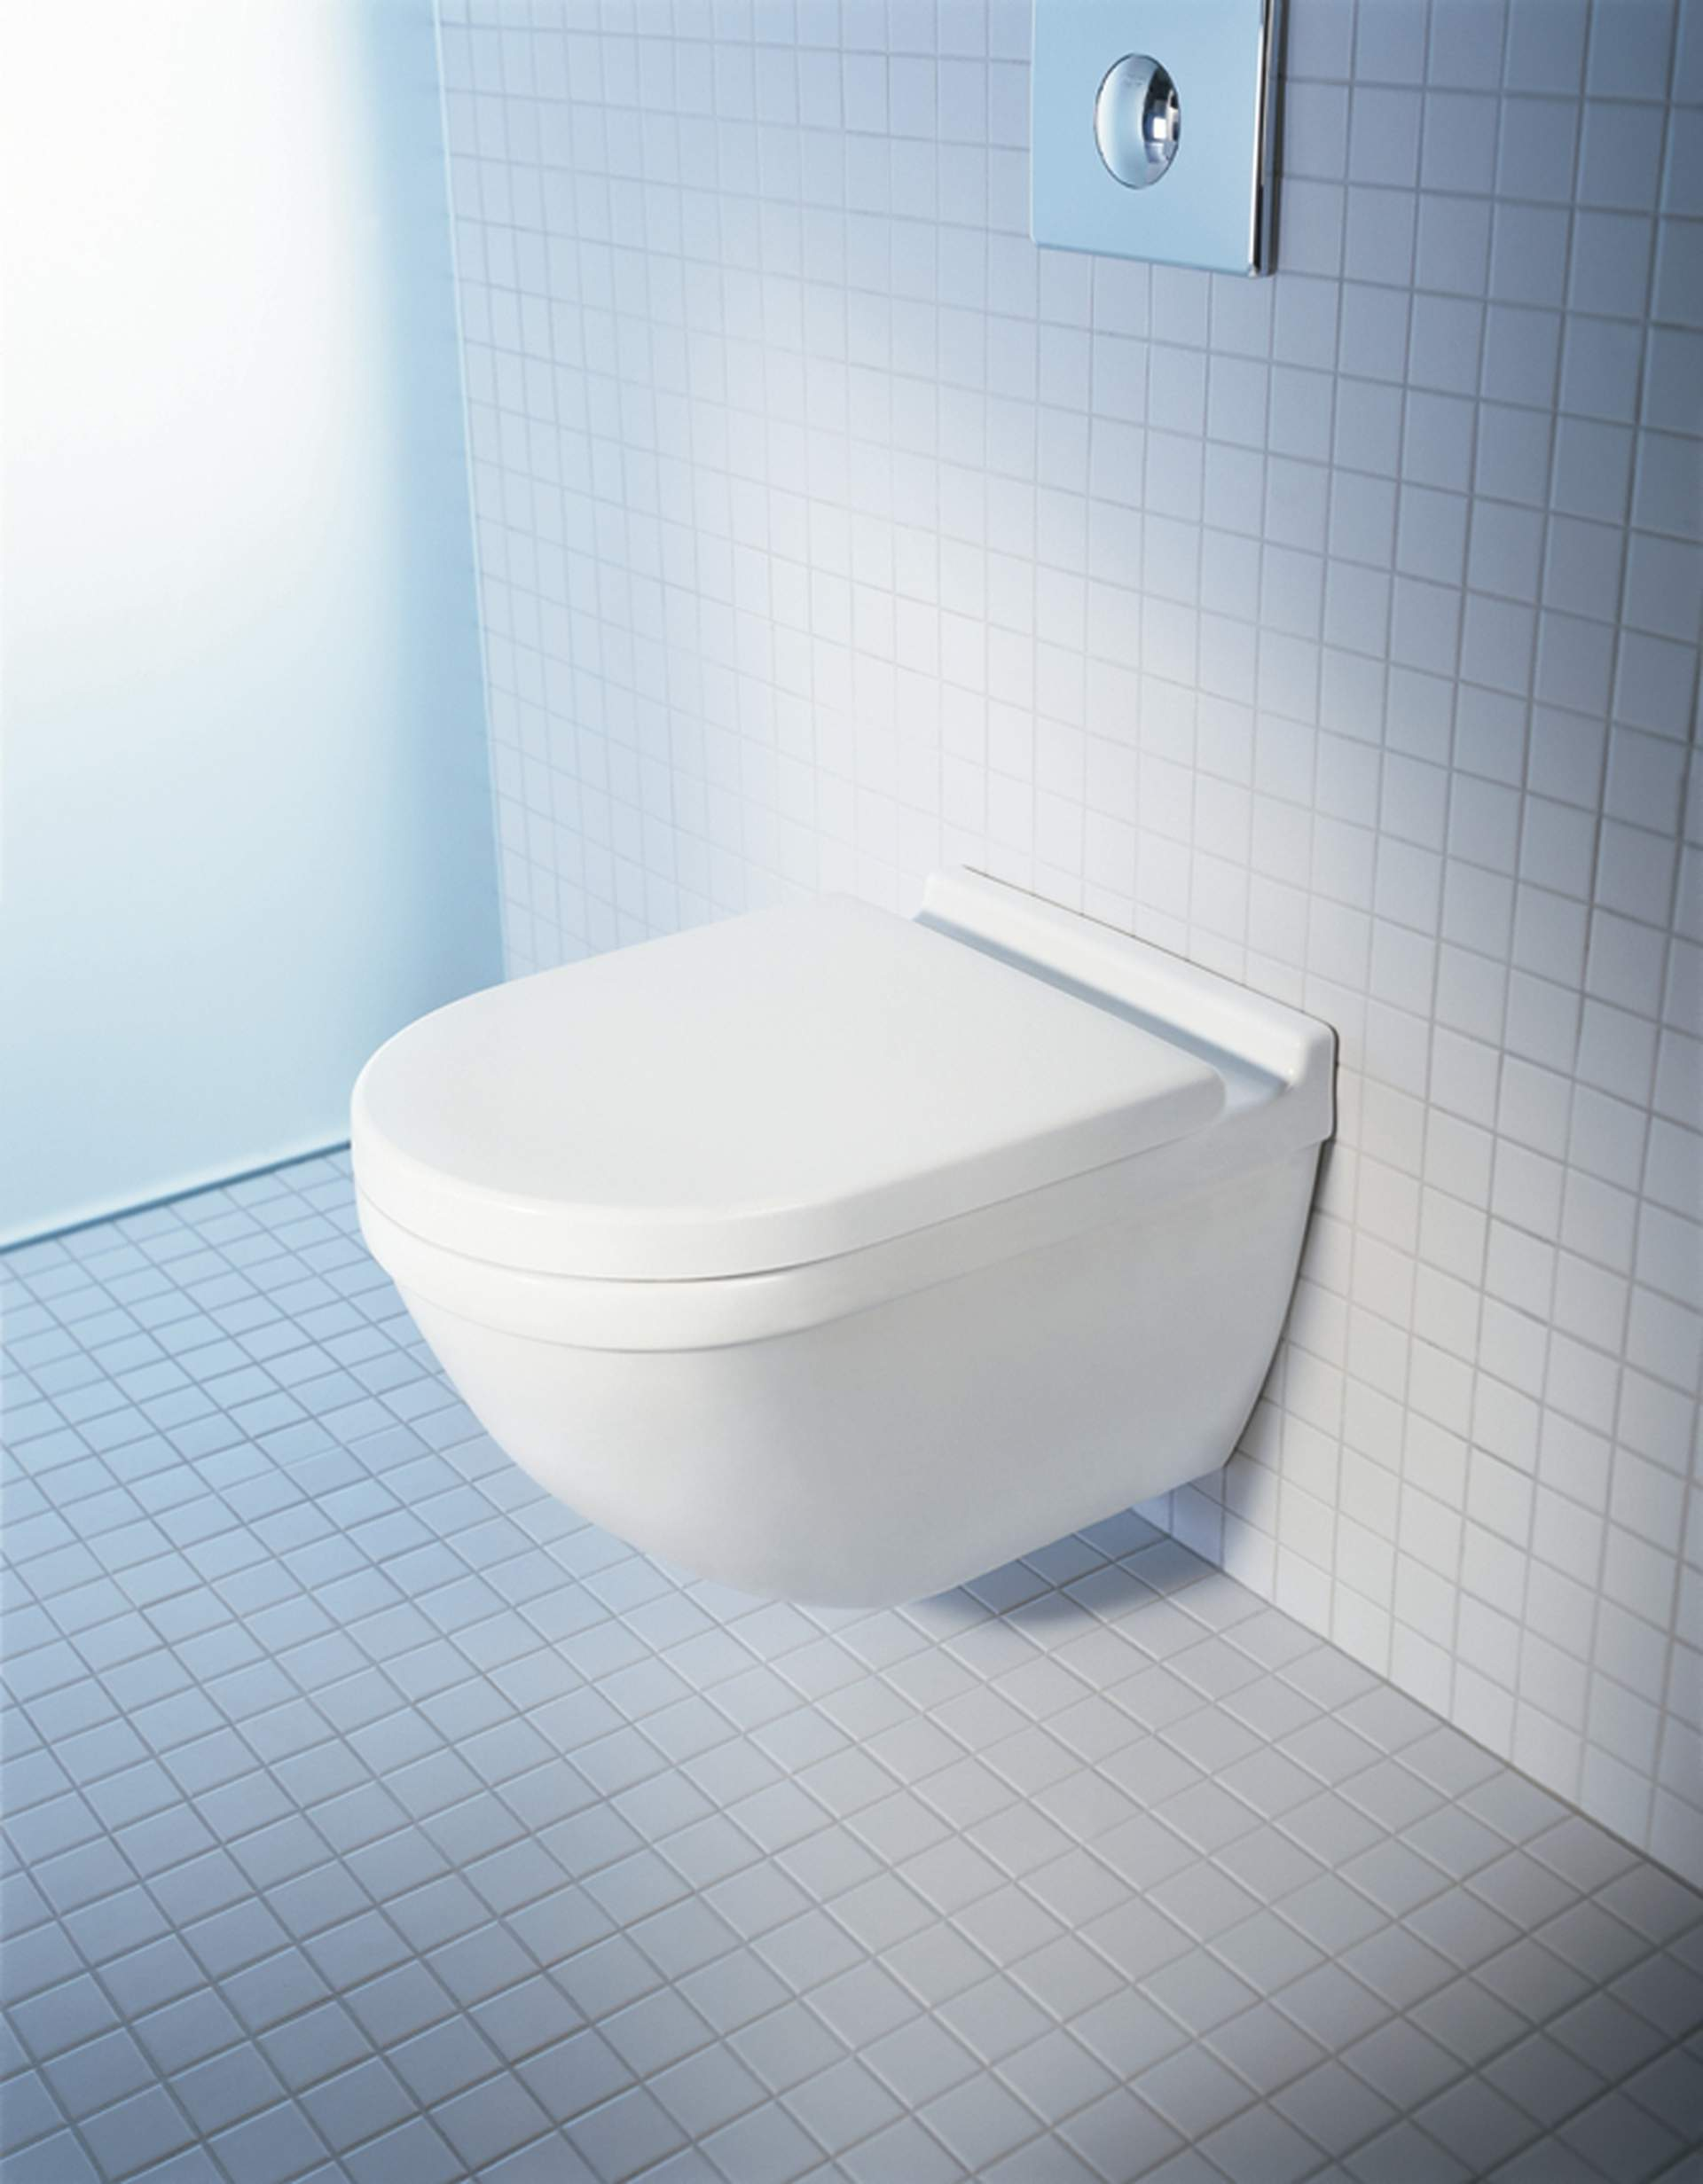 reason enough for philippe starck to dedicate just as much care to its design as to any other item in the range the wallmounted toilet that is closed at